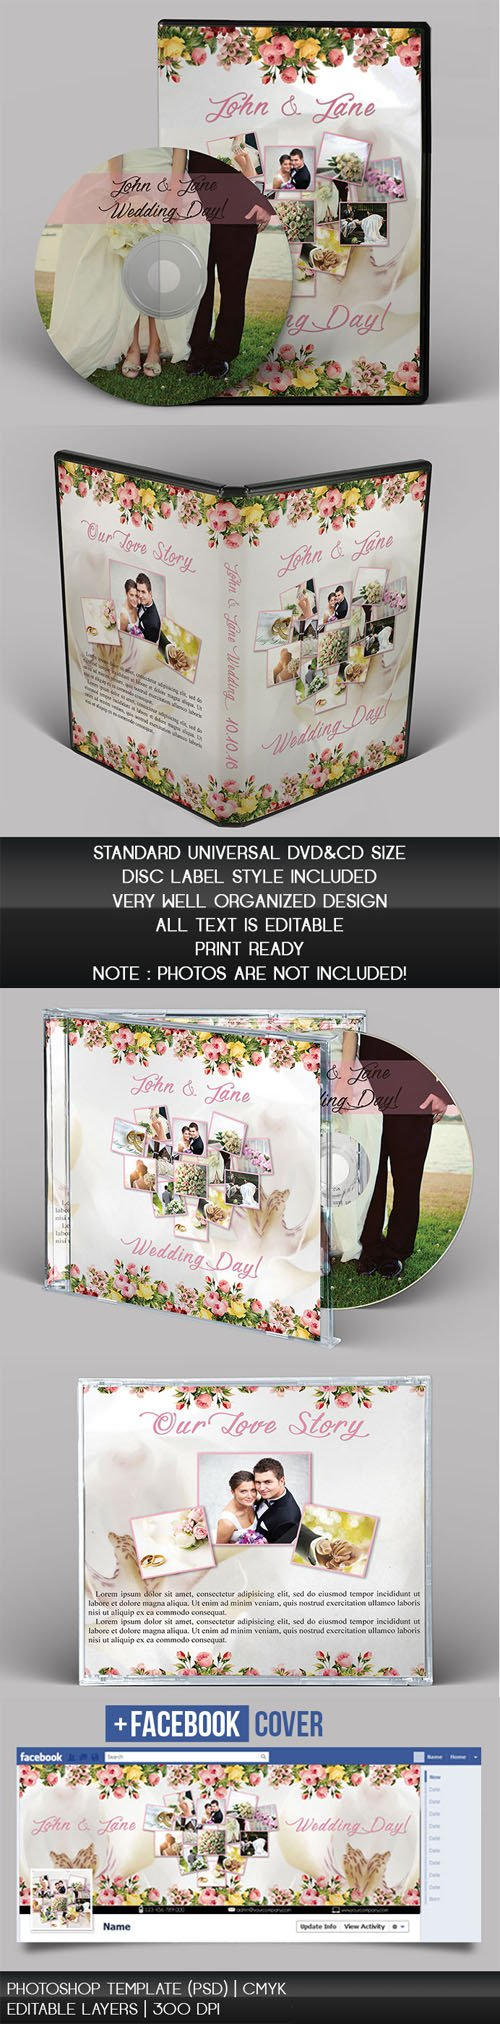 Wedding CD/DVD Cover - PSD Brochure Templates (+ Facebook Cover)